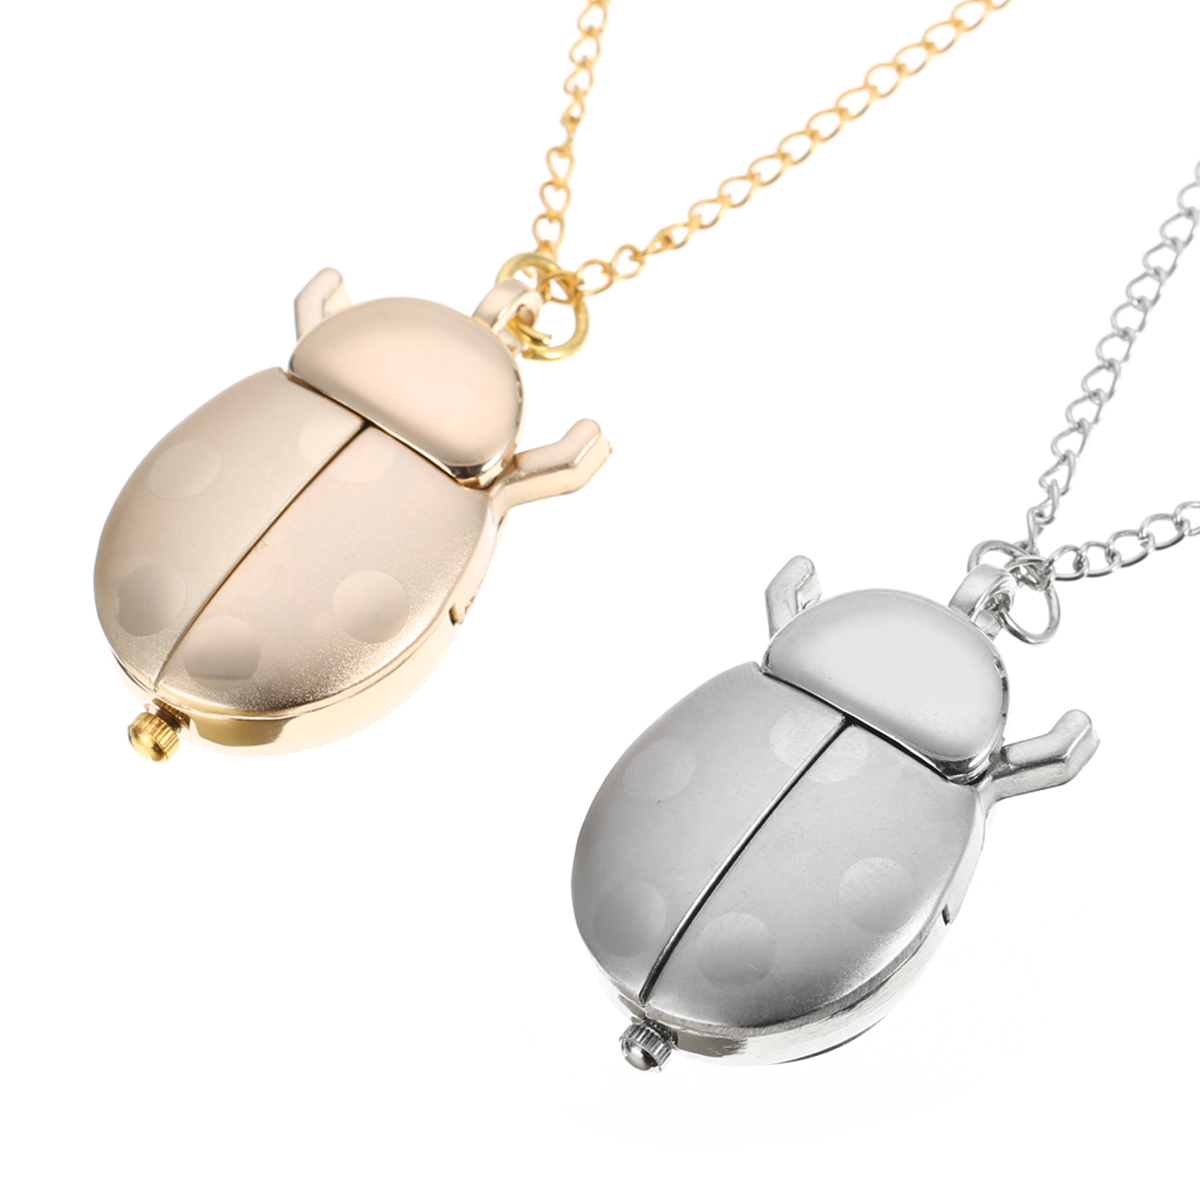 Gold/Silver Beetle Pocket Watch Womens Girl Small Animal Necklace Pendant Quartz Shellhard Ladybug Fob Pocket Watch with Chain